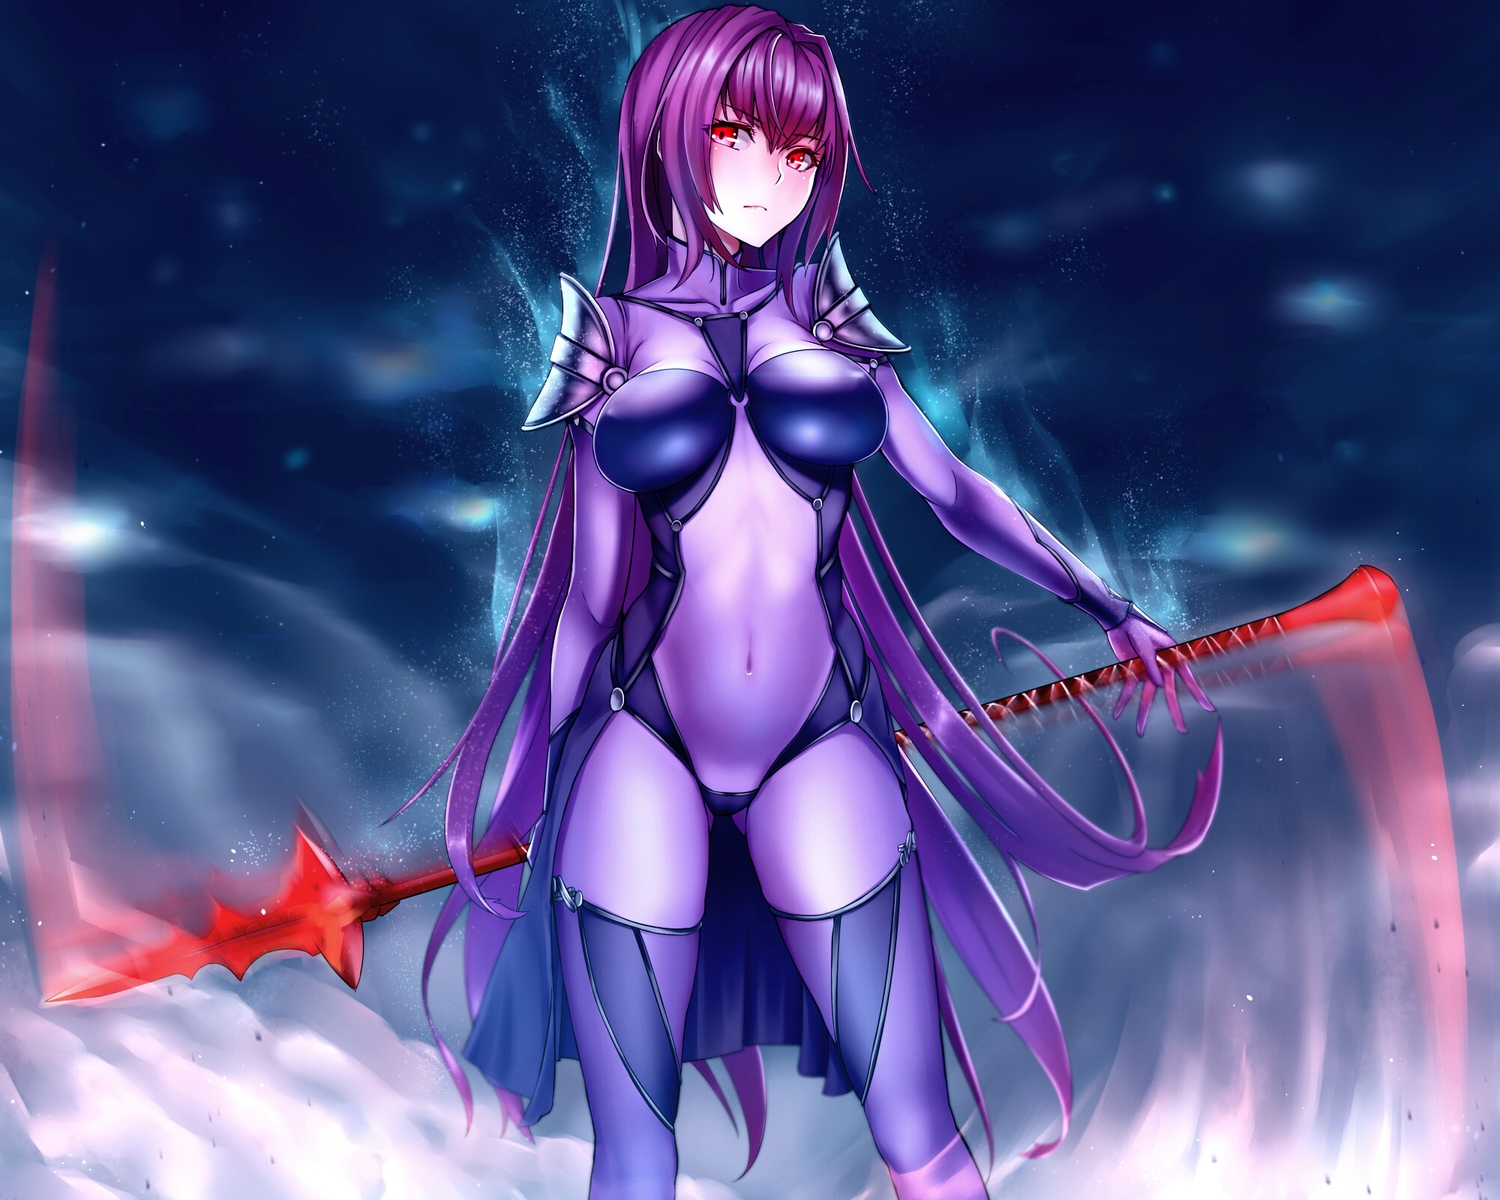 armor bodysuit cropped erect_nipples fate/grand_order fate_(series) long_hair purple_hair red_eyes scathach_(fate/grand_order) shijiu_(adamhutt) skintight spear weapon